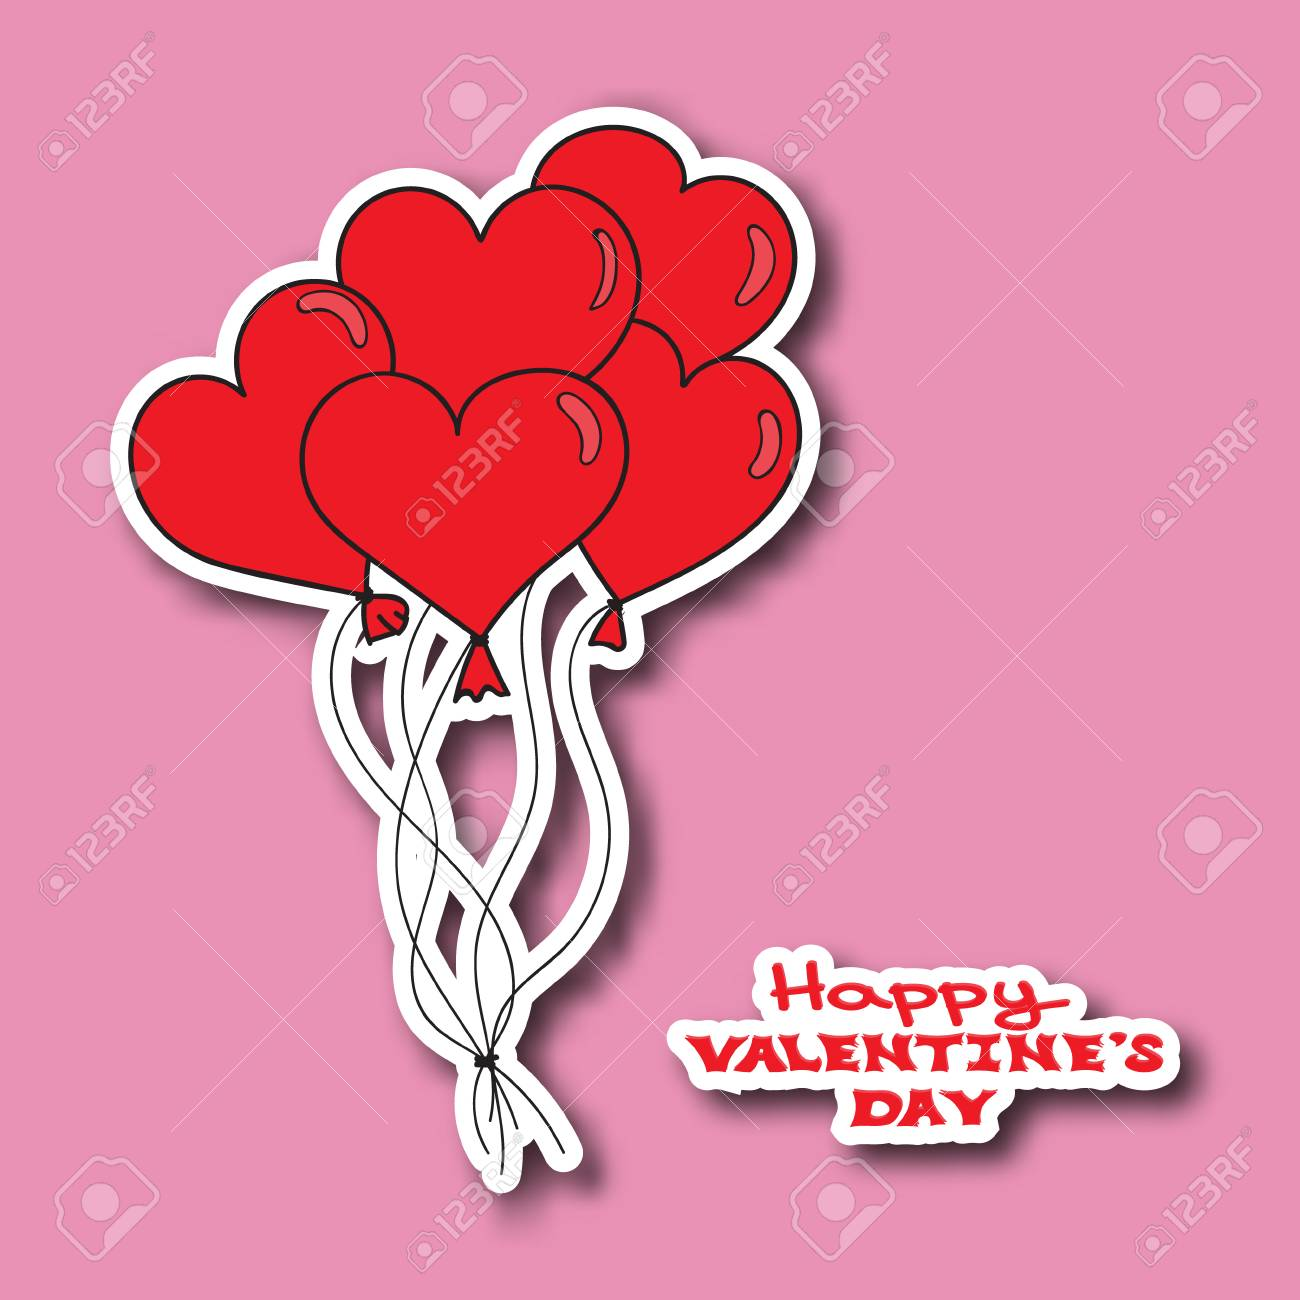 Valentines Day Card Template Hand Drawn Red Hearts Balloons